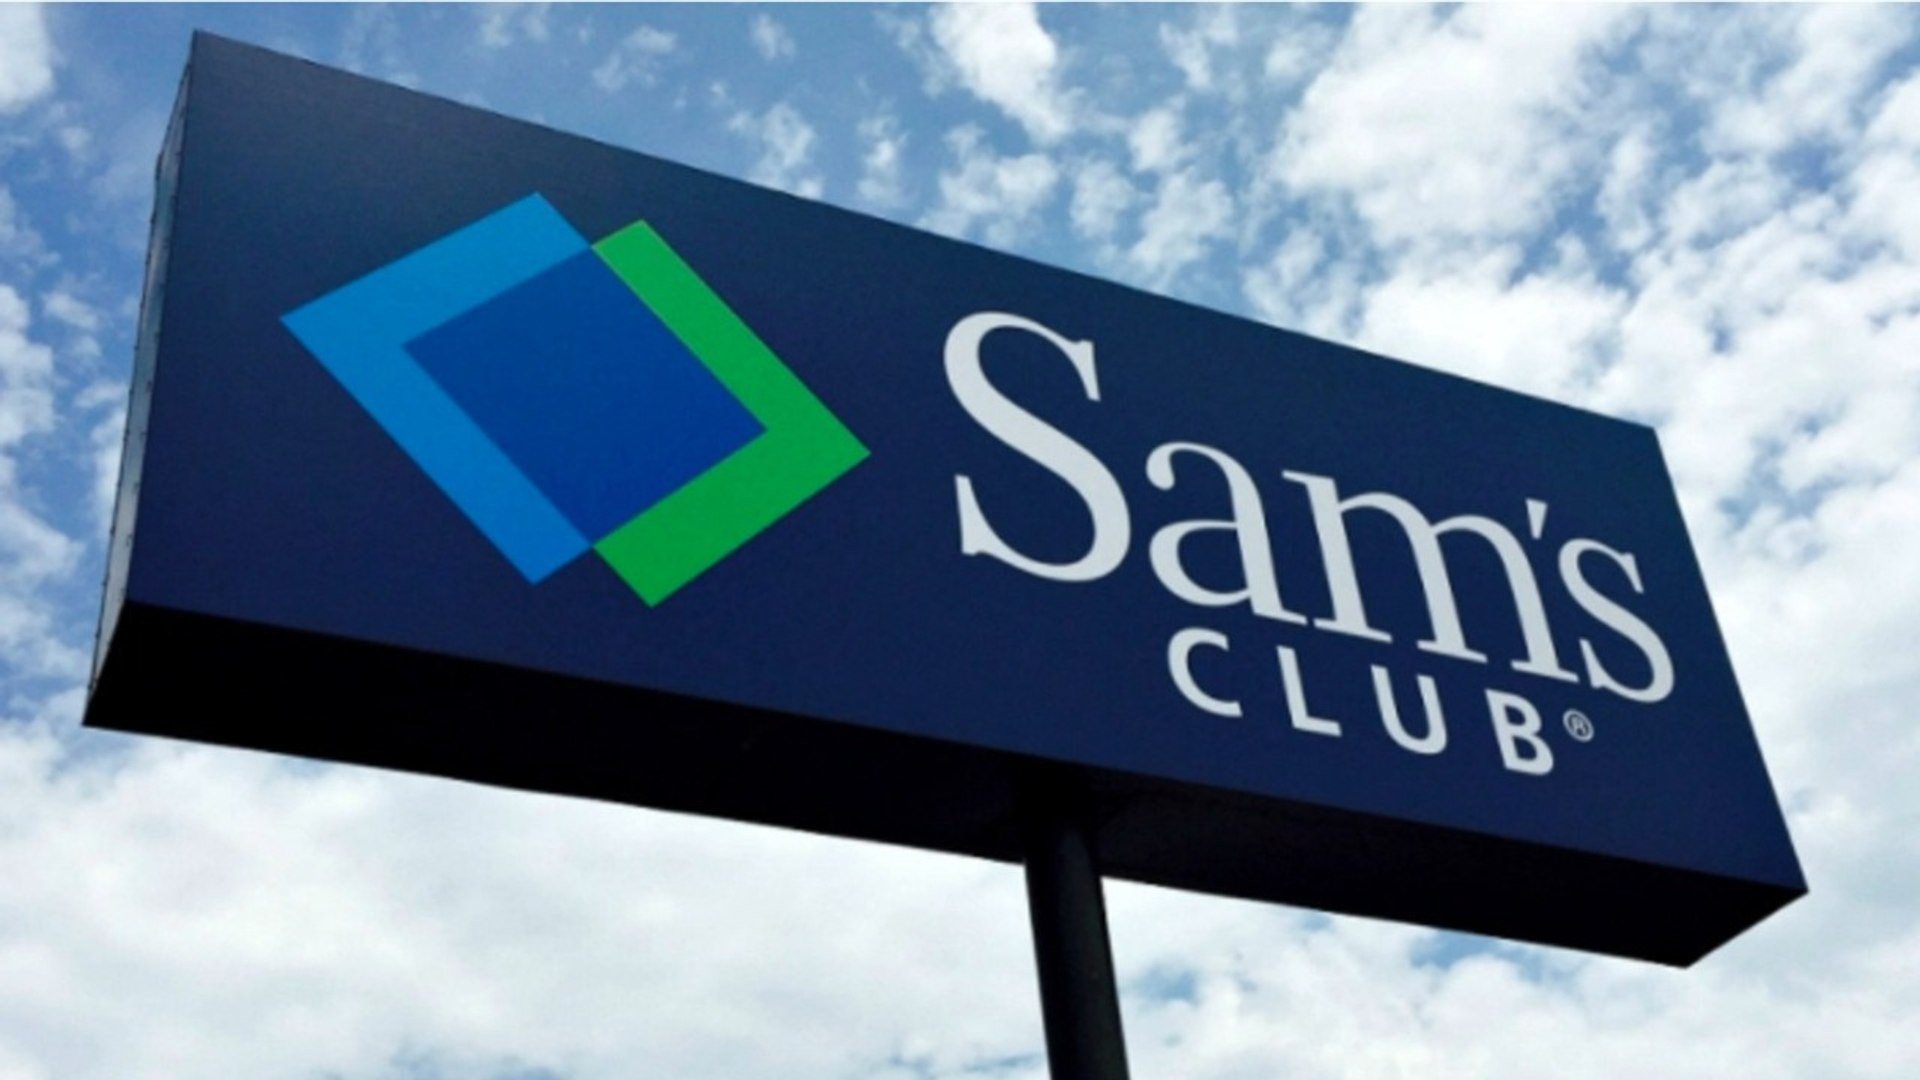 White House Parises Walmart For Raising Minimum Wage as Company Closes Sam's Club Stores